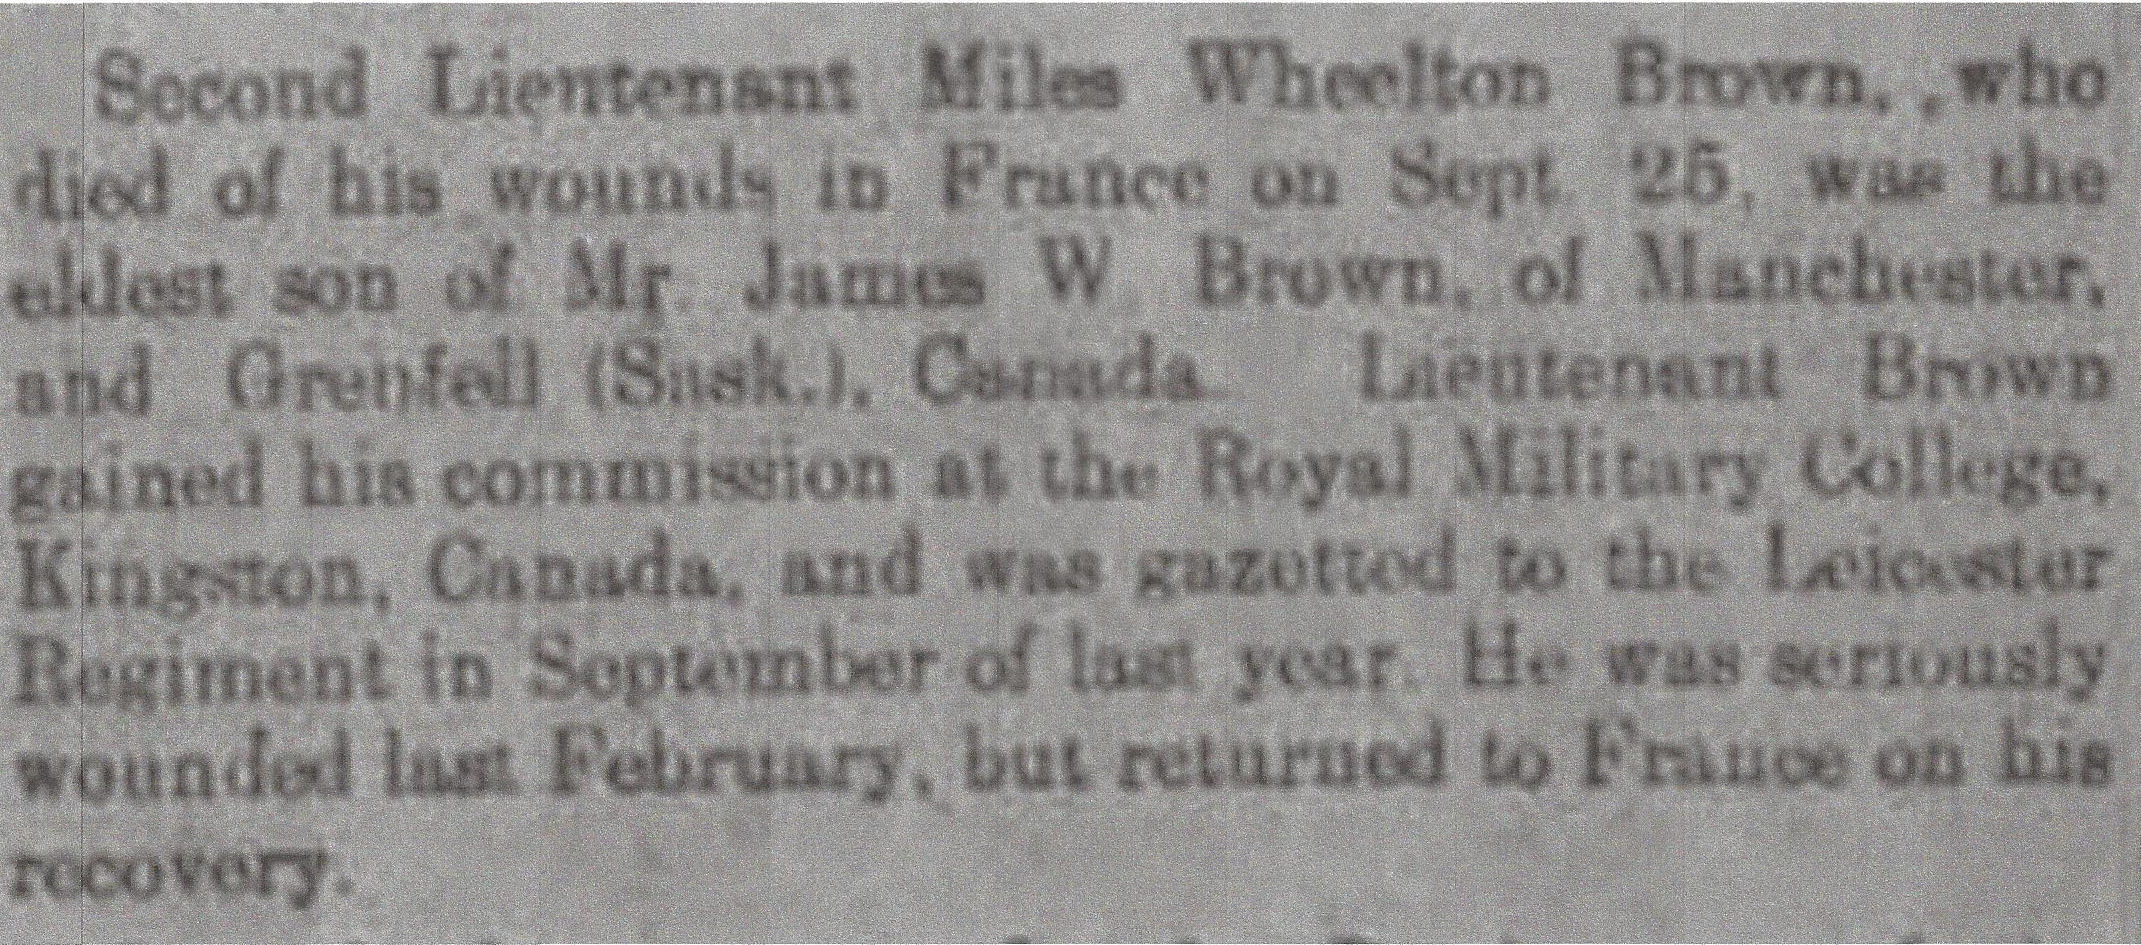 Newspaper Clipping– Newspaper clipping from Daily Telegraph of October 5, 1915. Image taken from web address of http://www.telegraph.co.uk/news/ww1-archive/11902190/Daily-Telegraph-October-5-1915.html